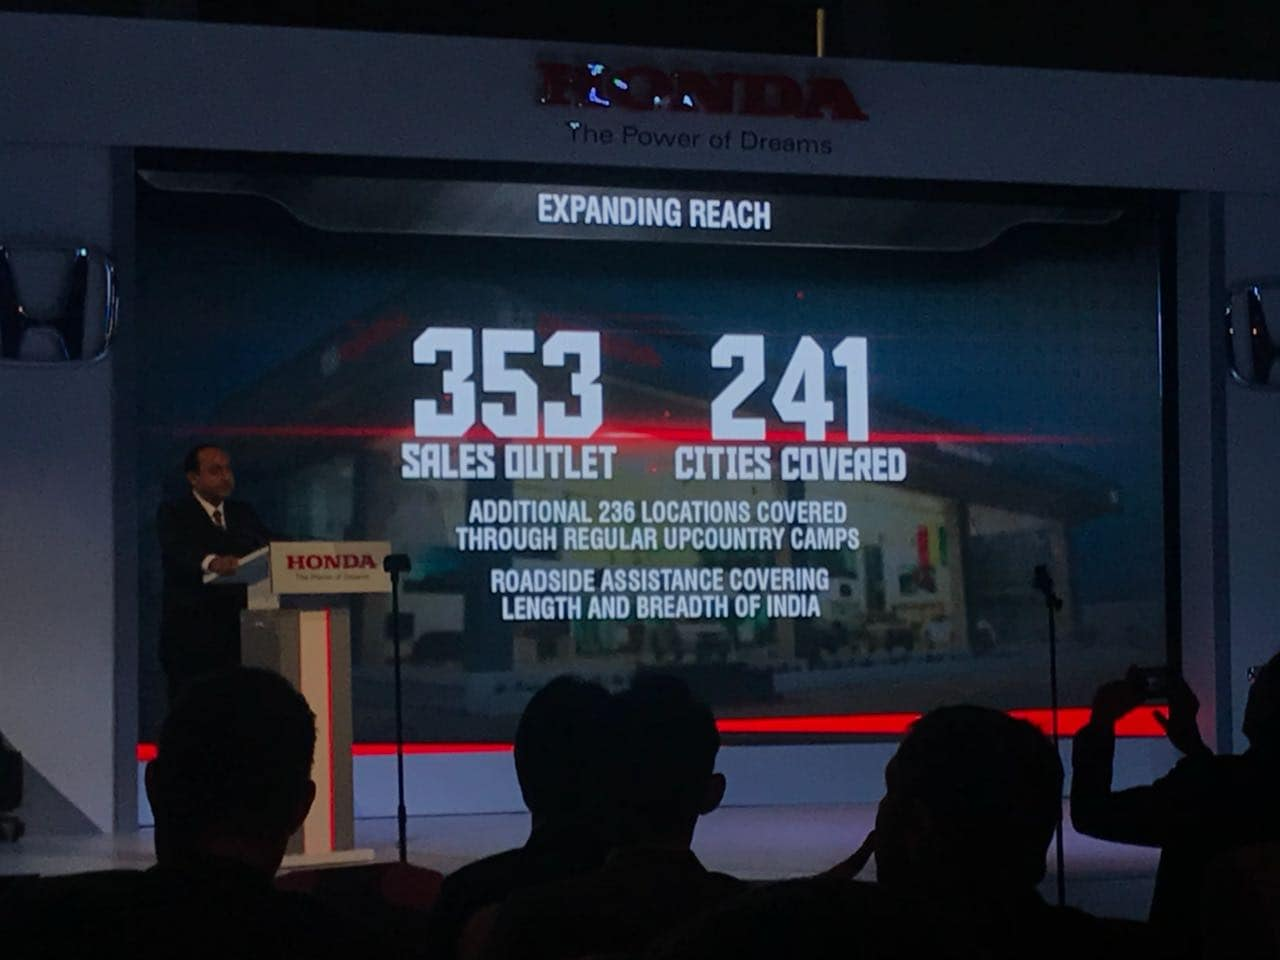 Honda Car India has 353 sales outlets in 241 cities across India. Honda is also offering roadside assistance for its cars throughout India as well